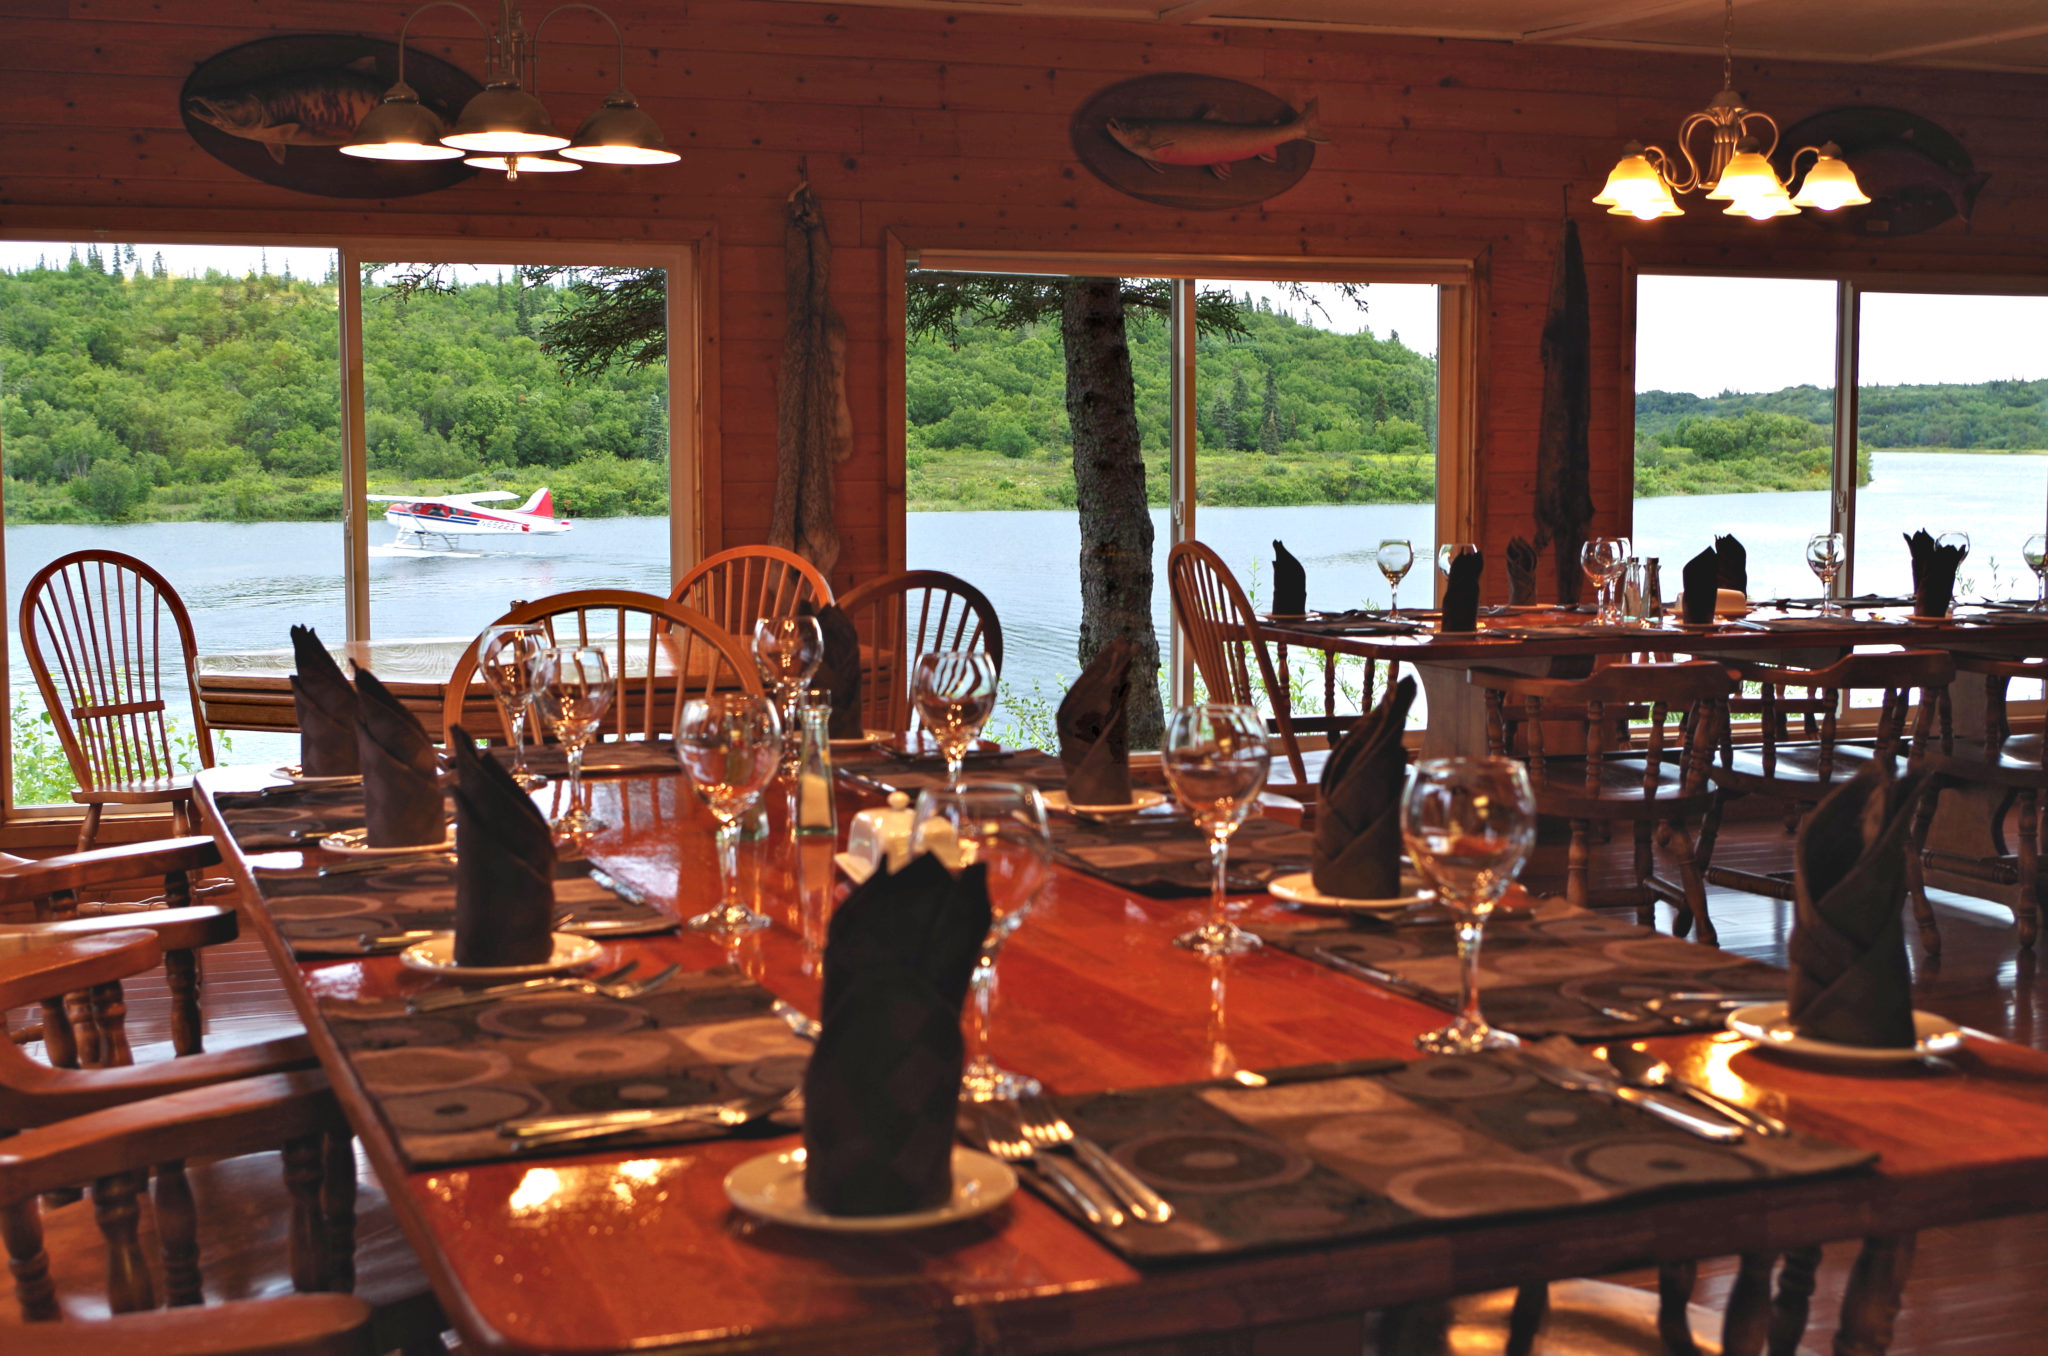 View of the river while eating